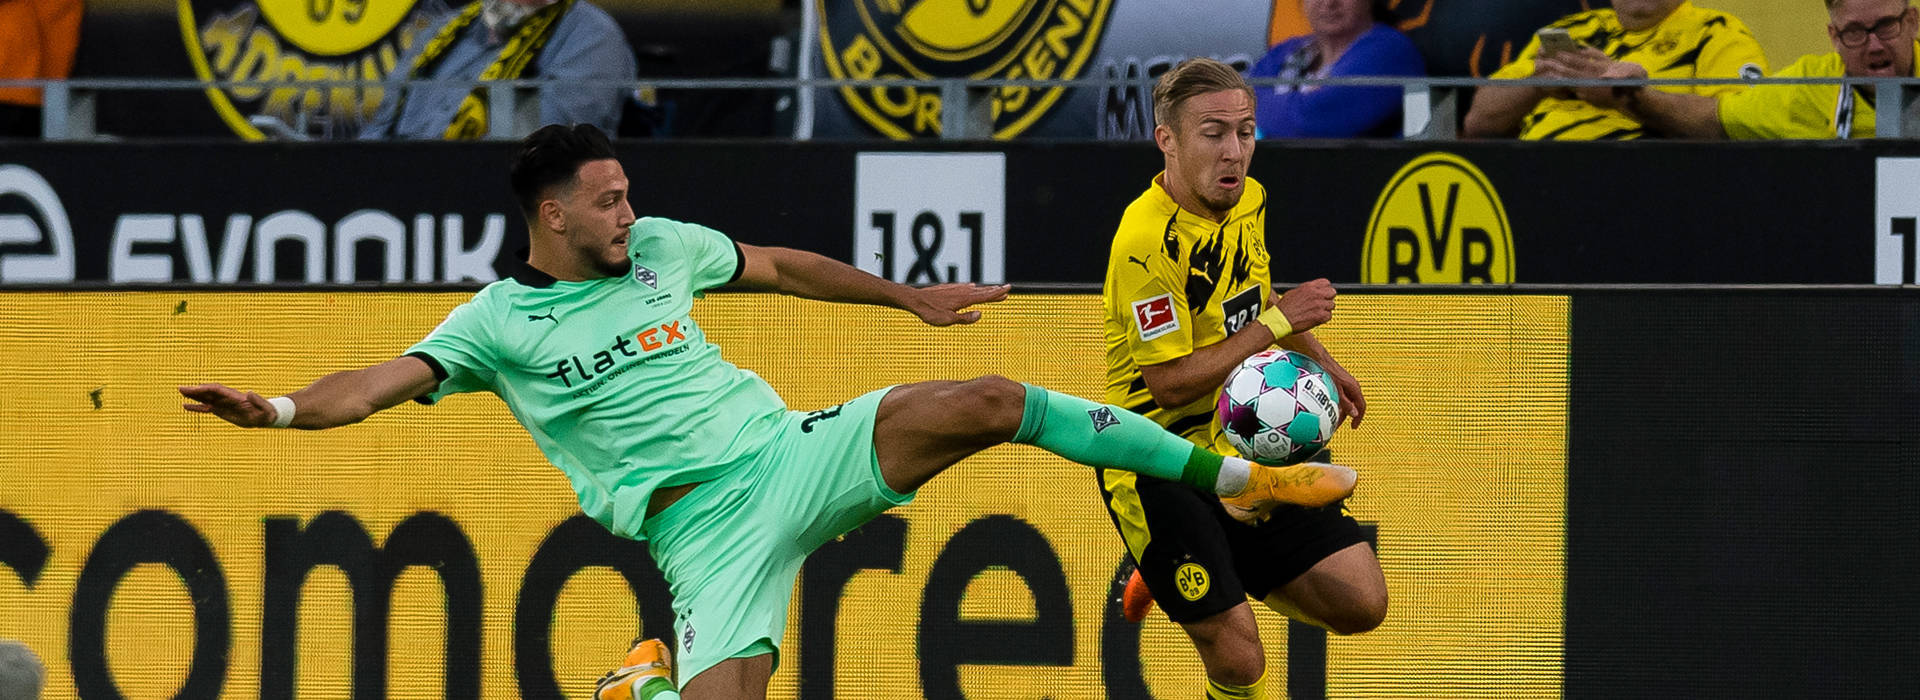 Reyna and Haaland fire BVB to 3-0 win over Gladbach